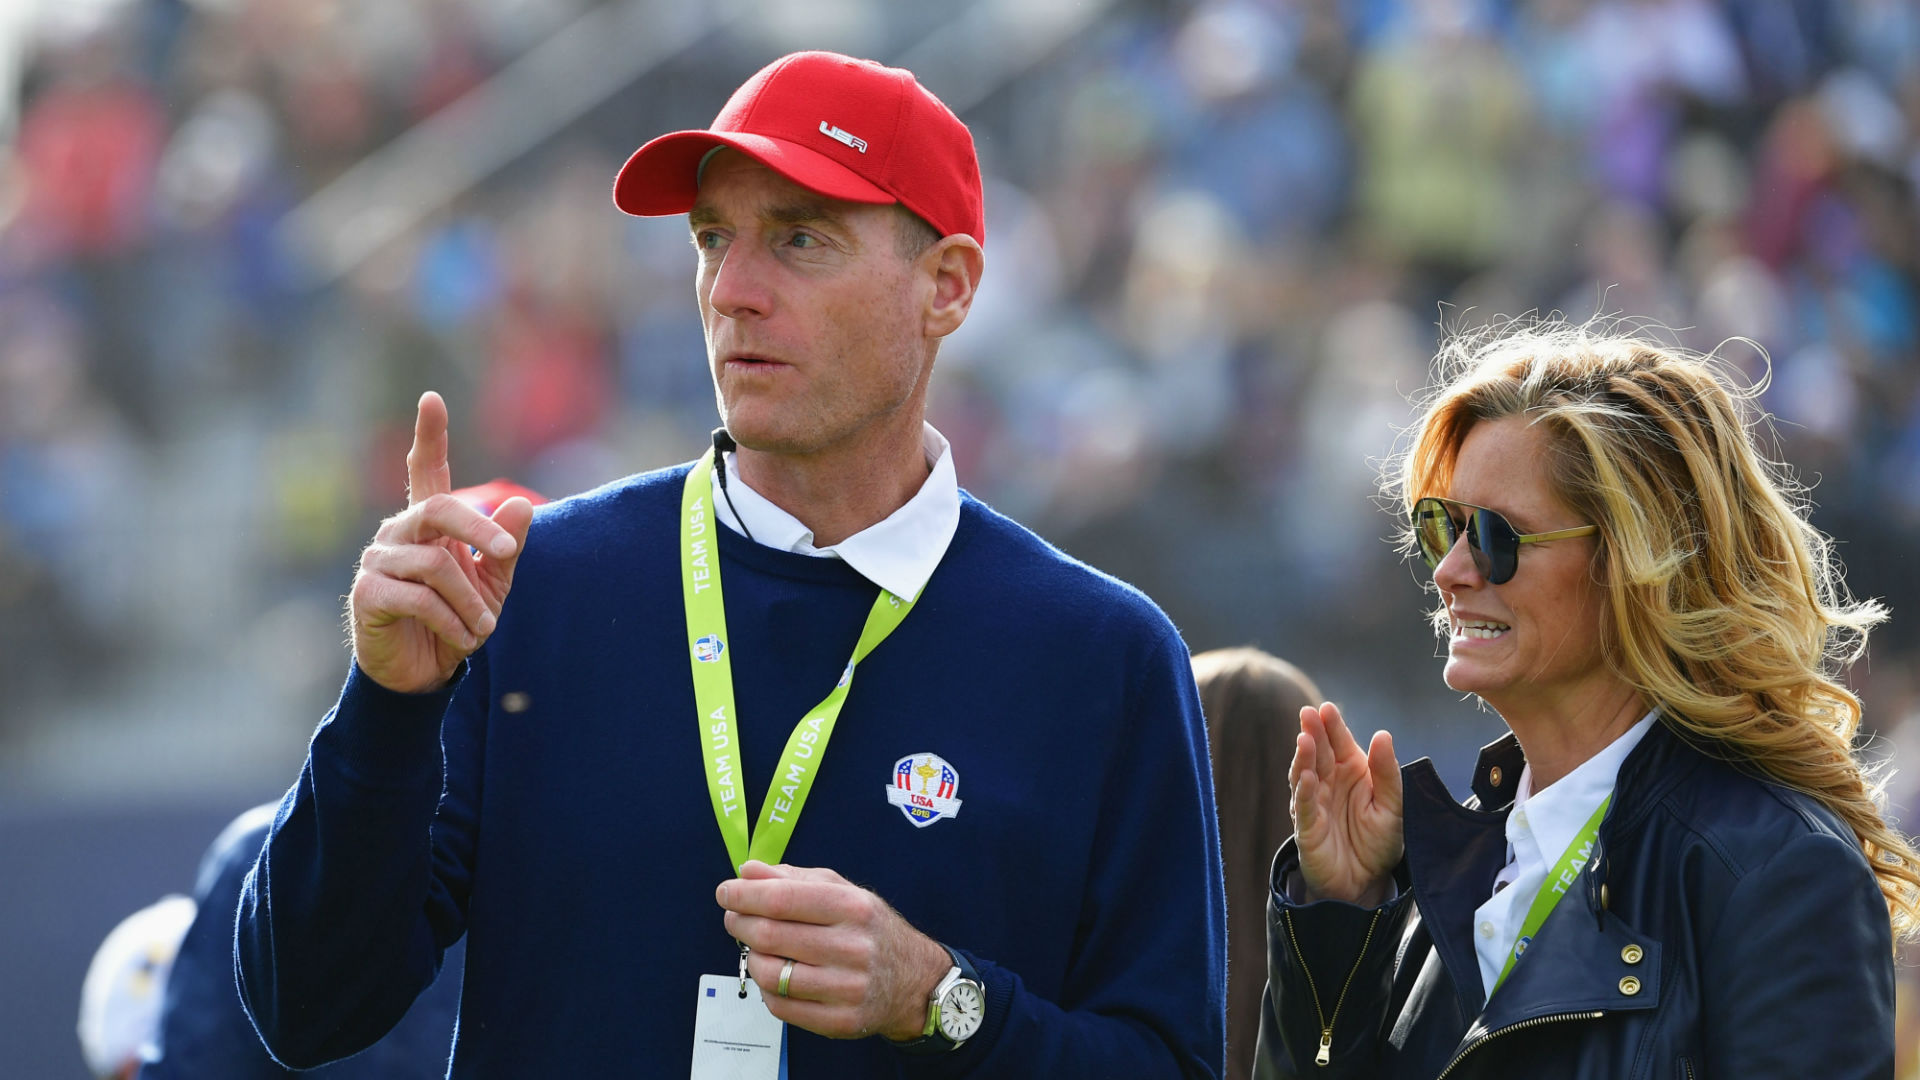 Ryder Cup 2018: Jim Furyk expresses pride in Team USA